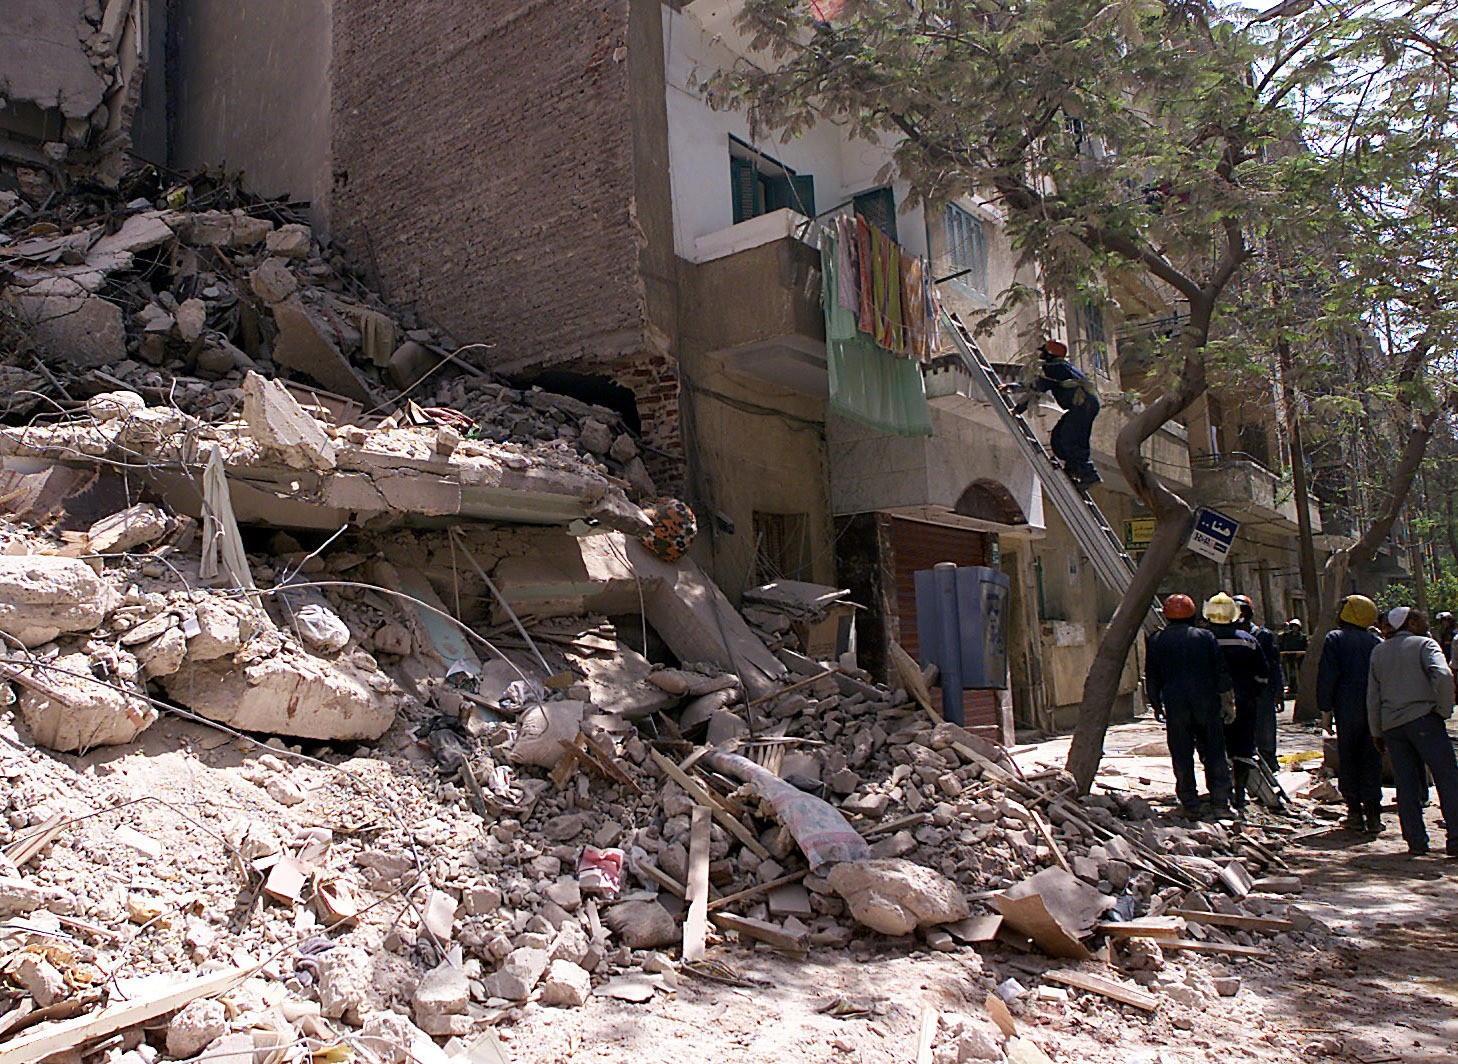 Dead and wounded due to the collapse of an apartment building in an Egyptian governorate